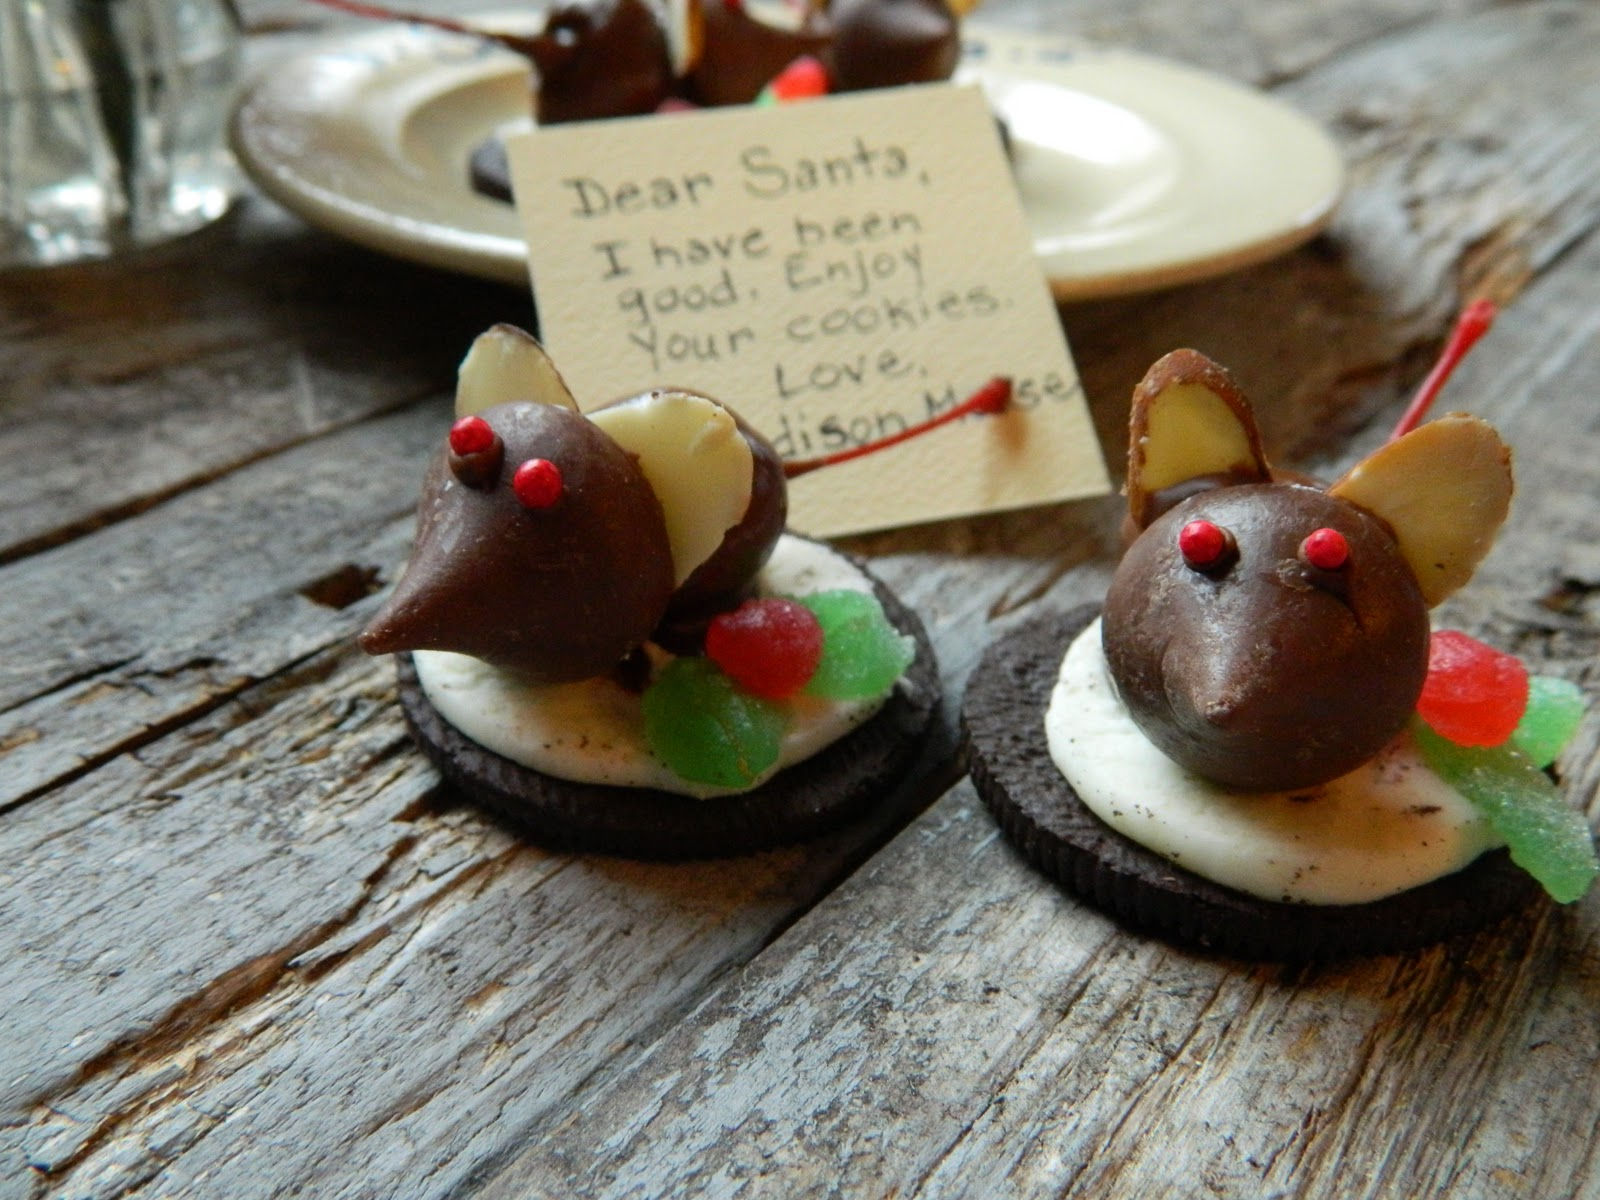 The Wednesday Baker Oreo Cherry Dipped Christmas Mice